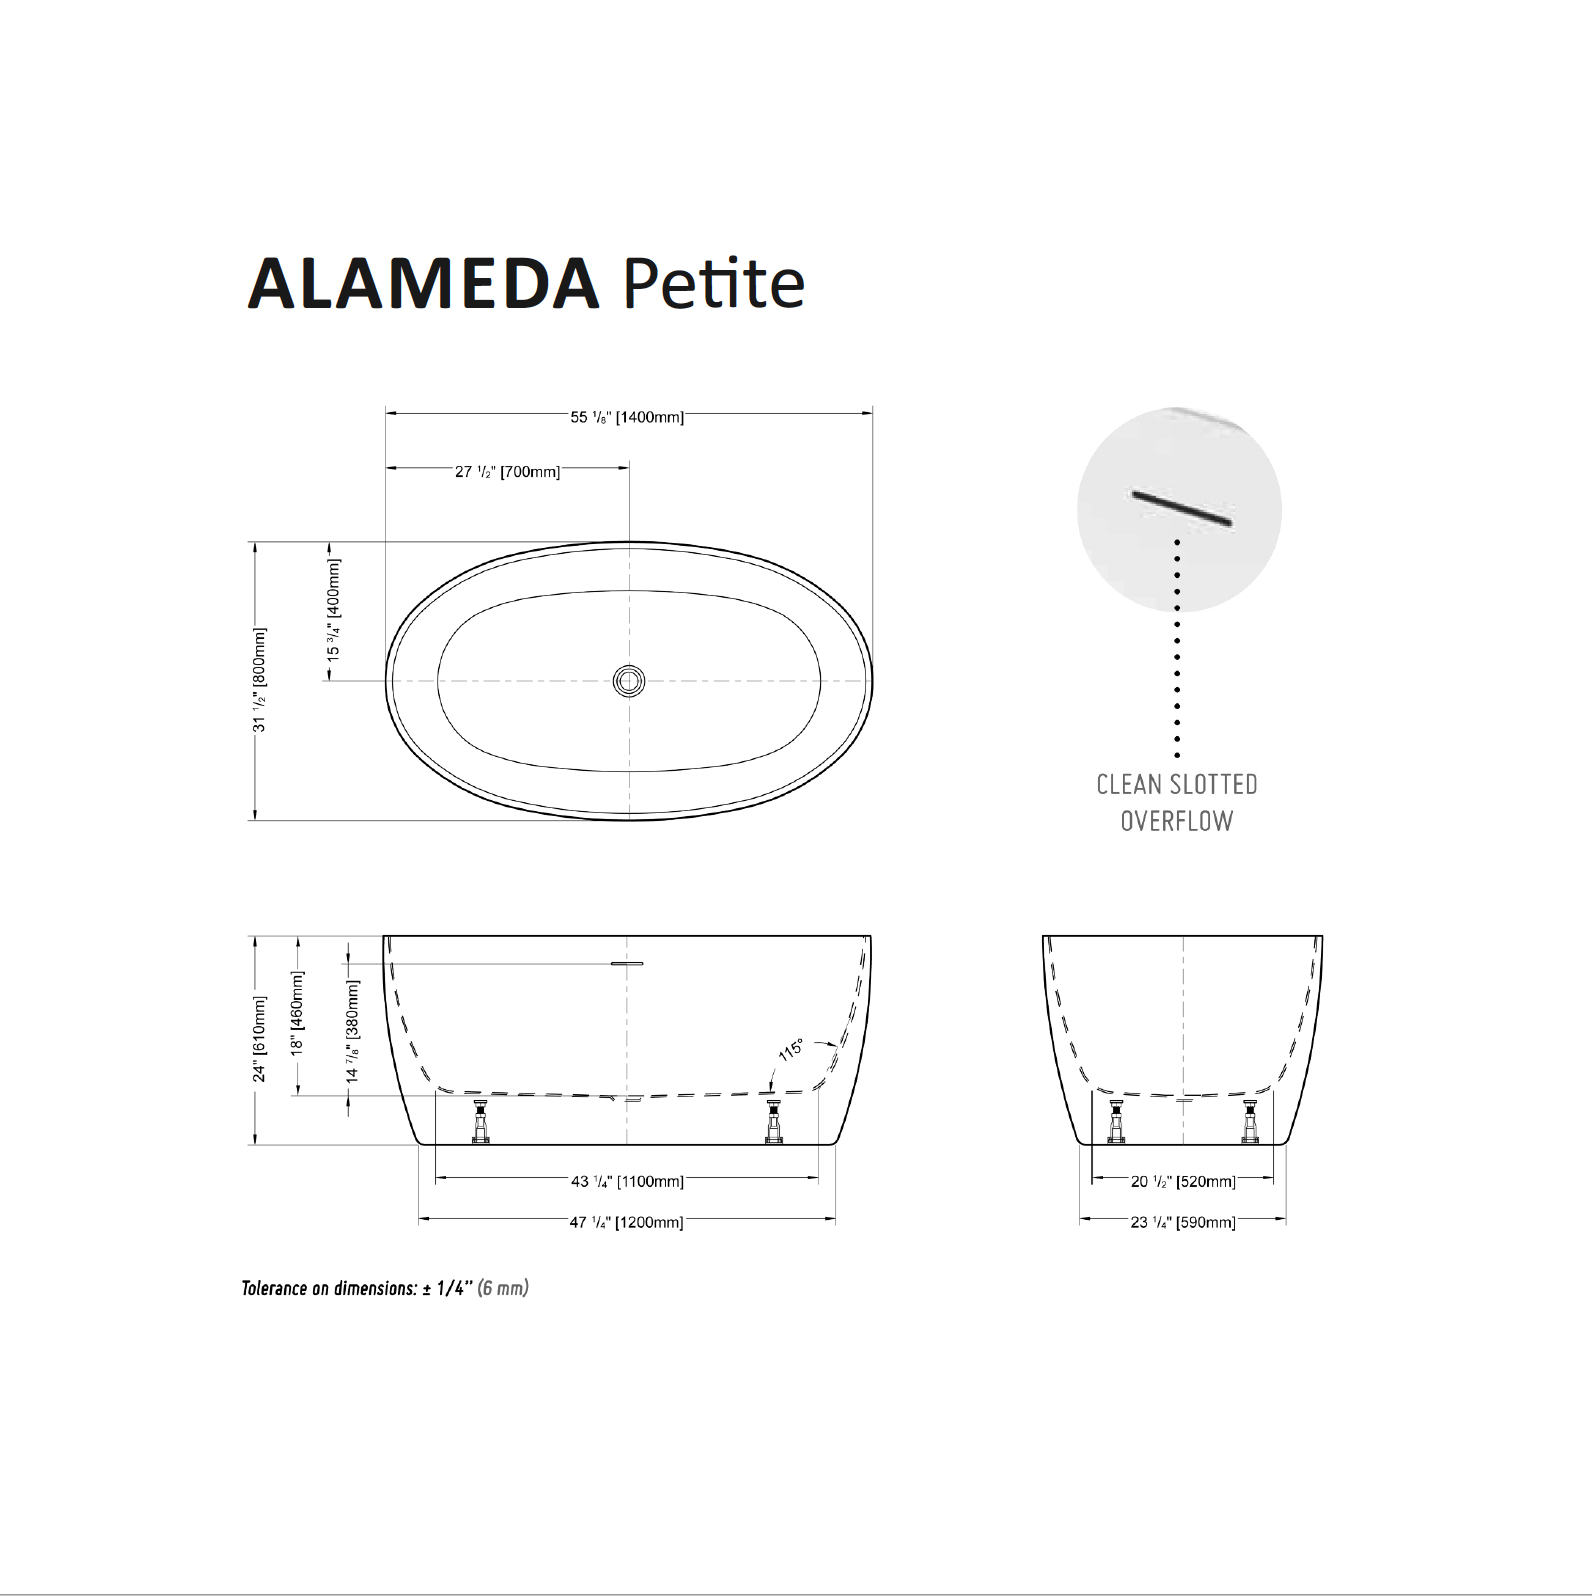 Alameda Petite Tub Specifications